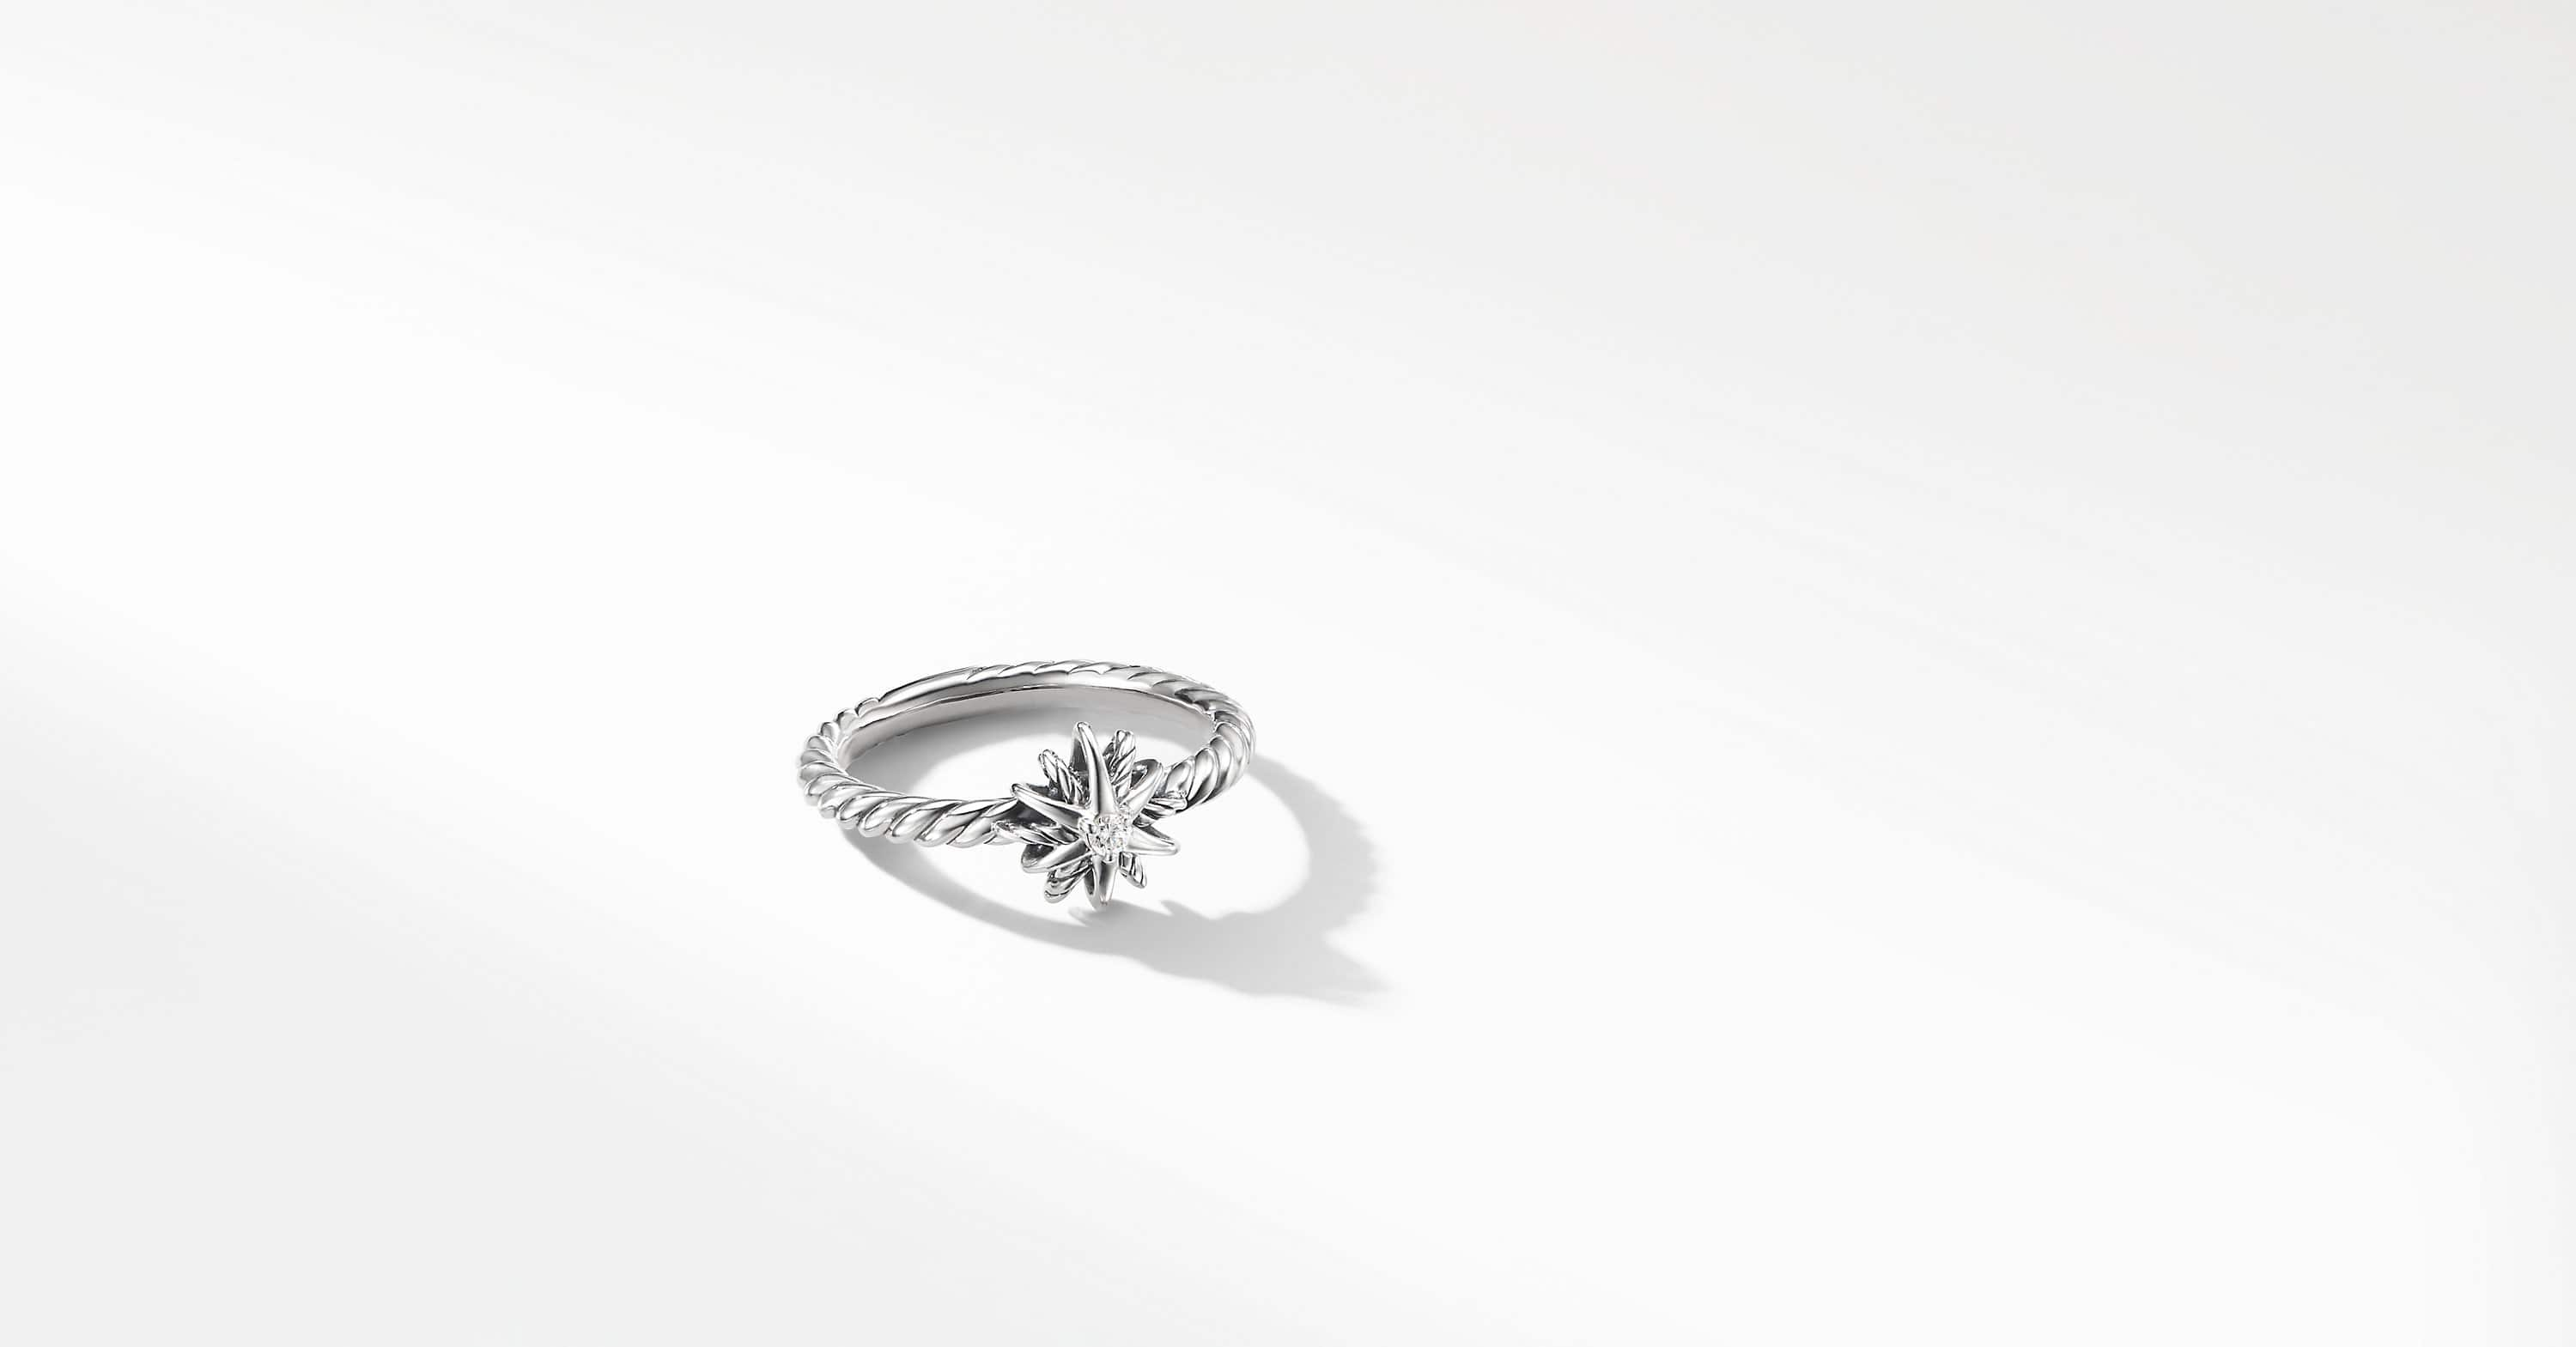 Starburst Kids Ring with Diamonds, 8mm